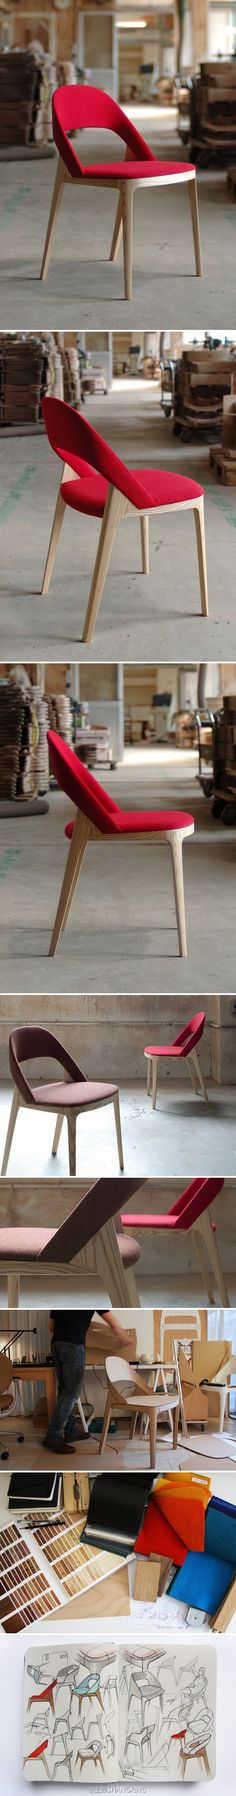 Clamp Chair |